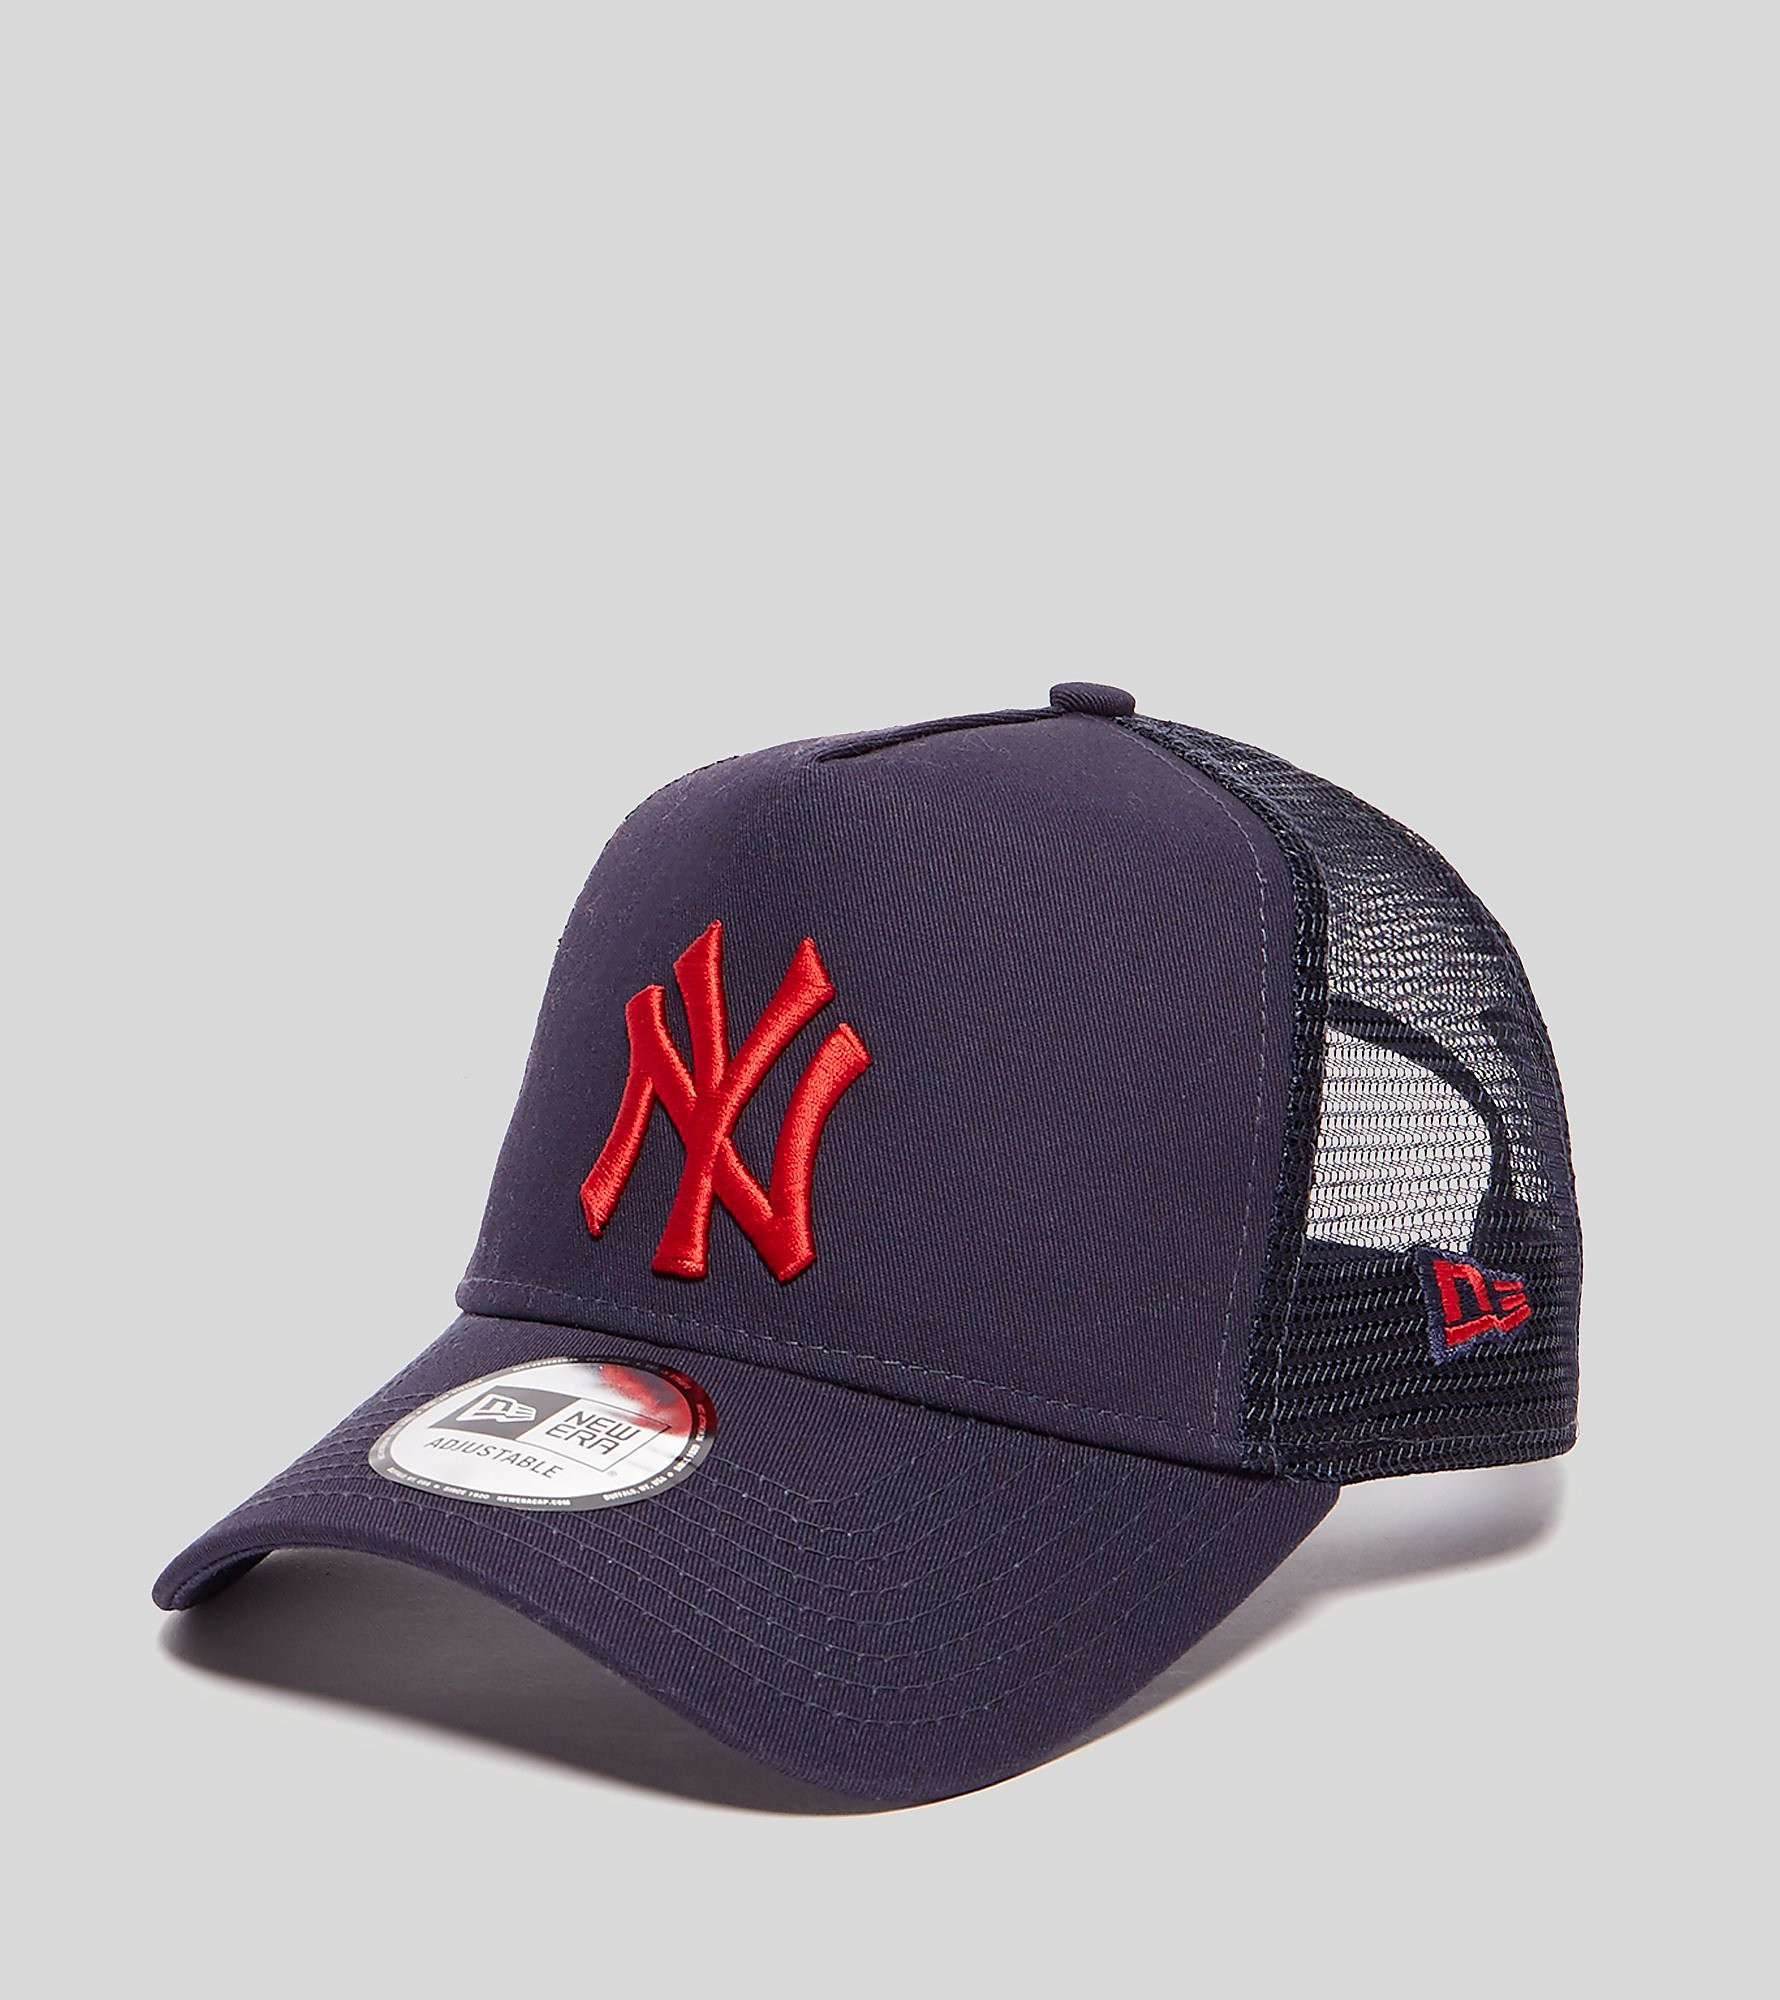 New Era Aframe NY Cap